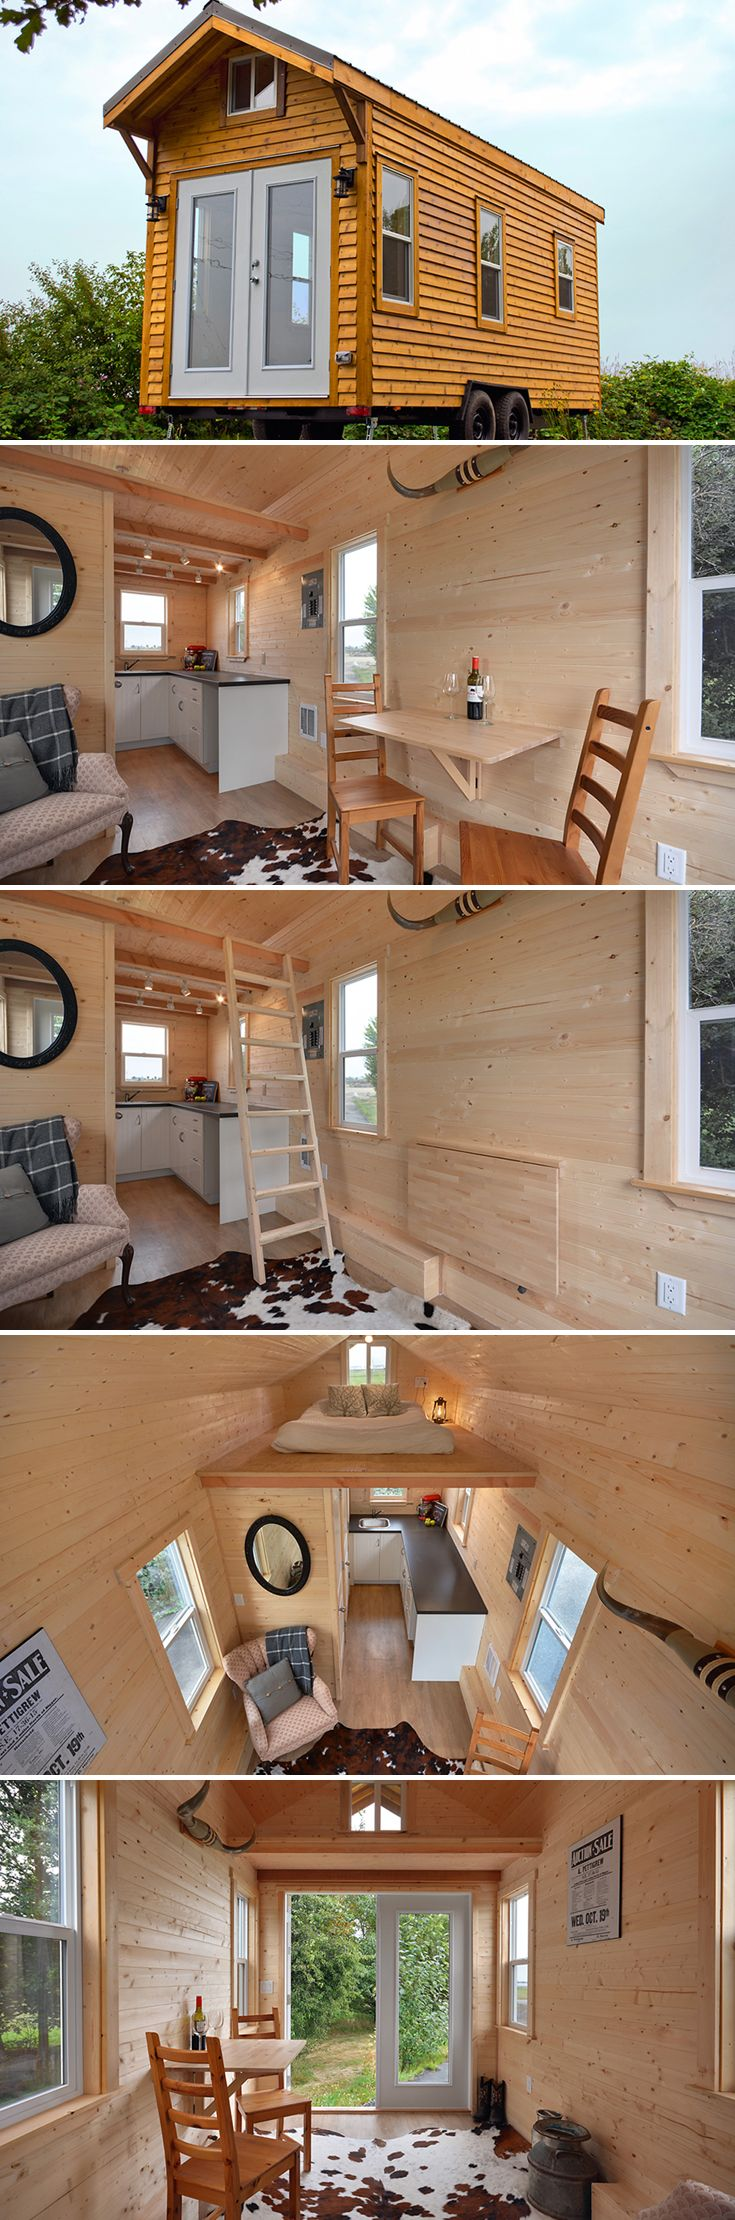 A rustic tiny house with French doors and windows throughout allow for plenty of natural light. The 20' model starts at $46,500 CAD (~$35,000 USD).